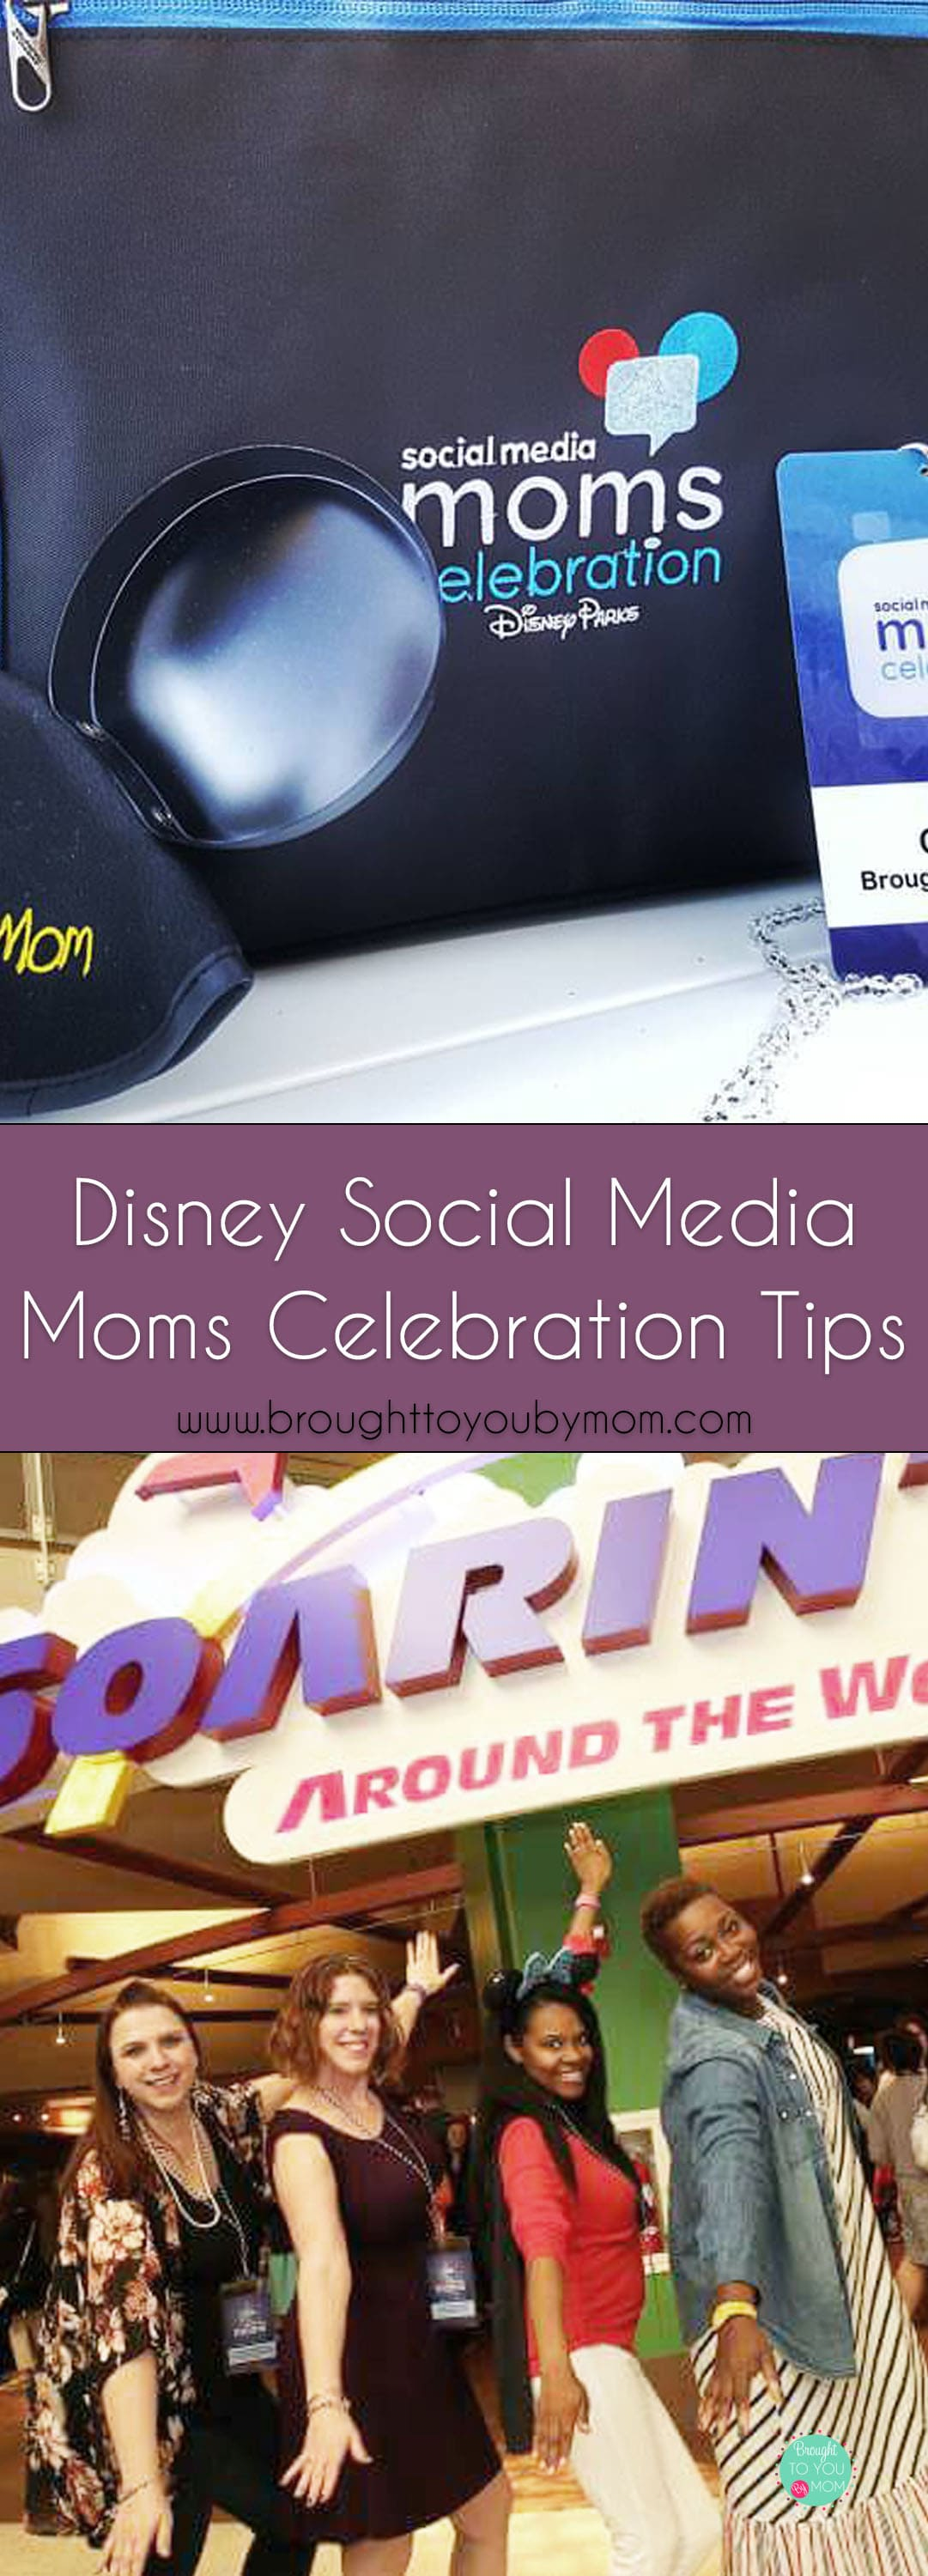 These Disney Social Media Moms Celebration tips will help you make the most of your experience at this event. Enjoy every moment! #disneysmmc #disneymom #travel #disney